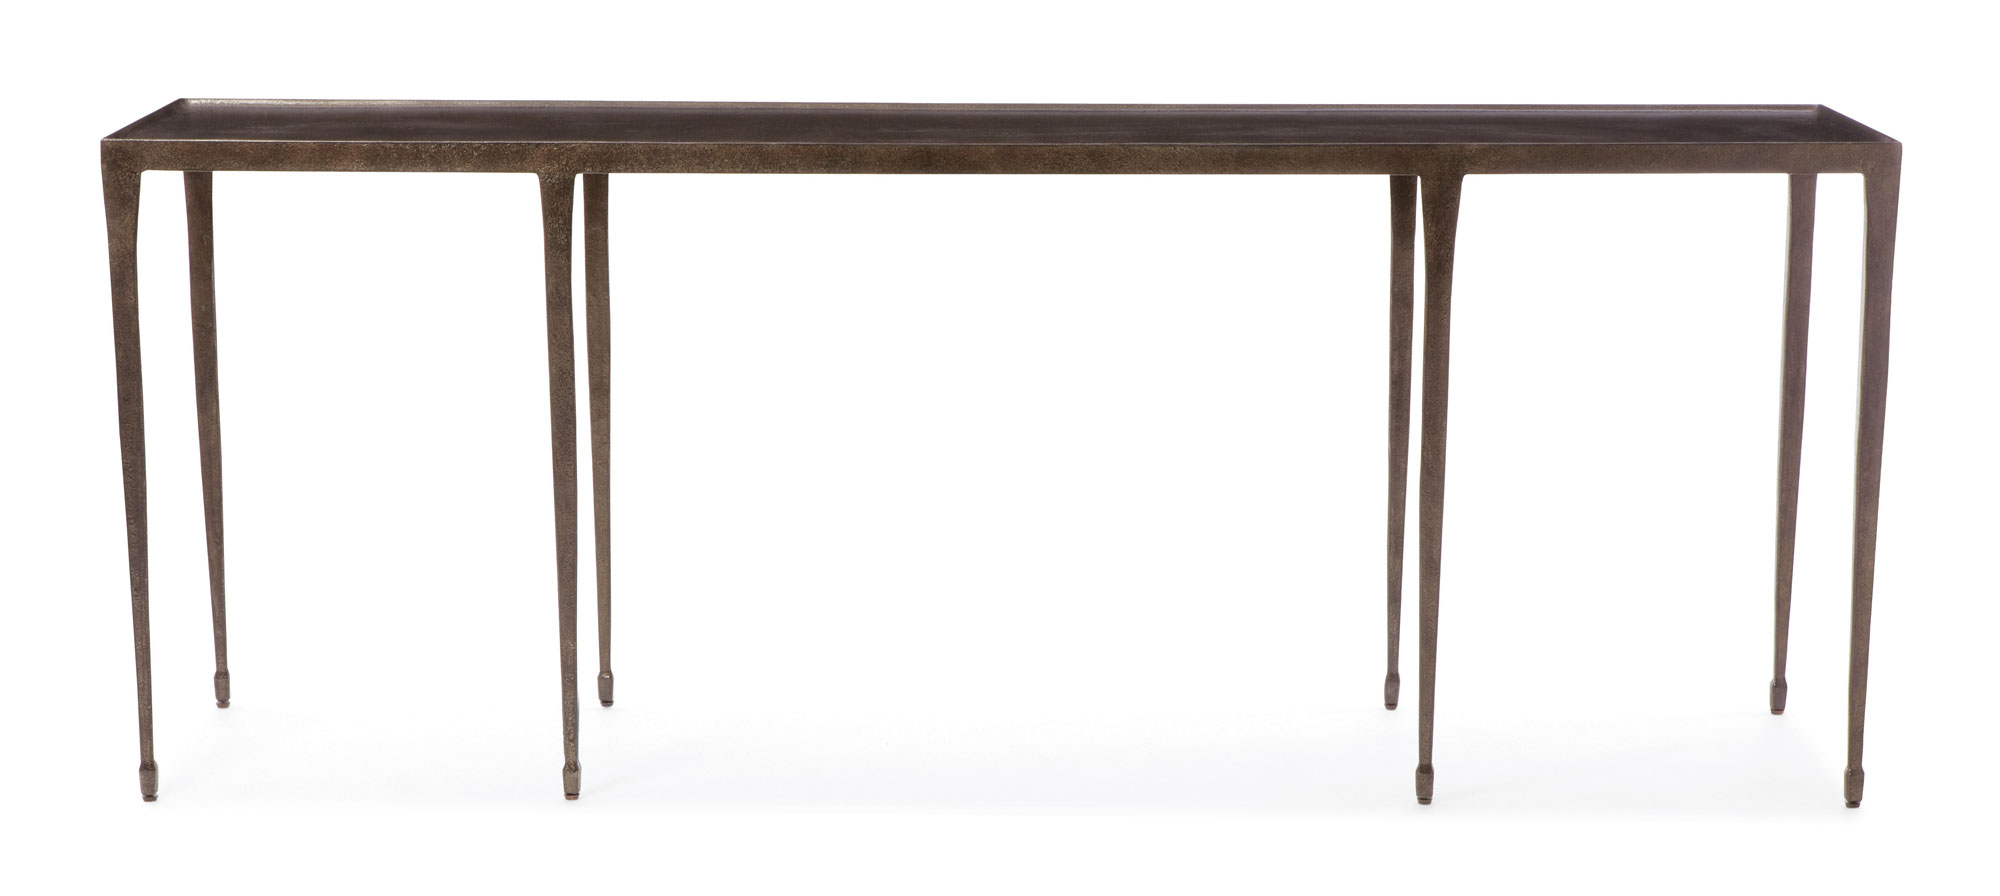 Newest Bernhardt Console Table Halden 84 Inch Hammered Iron Distressed Pertaining To Silviano 84 Inch Console Tables (Gallery 3 of 20)